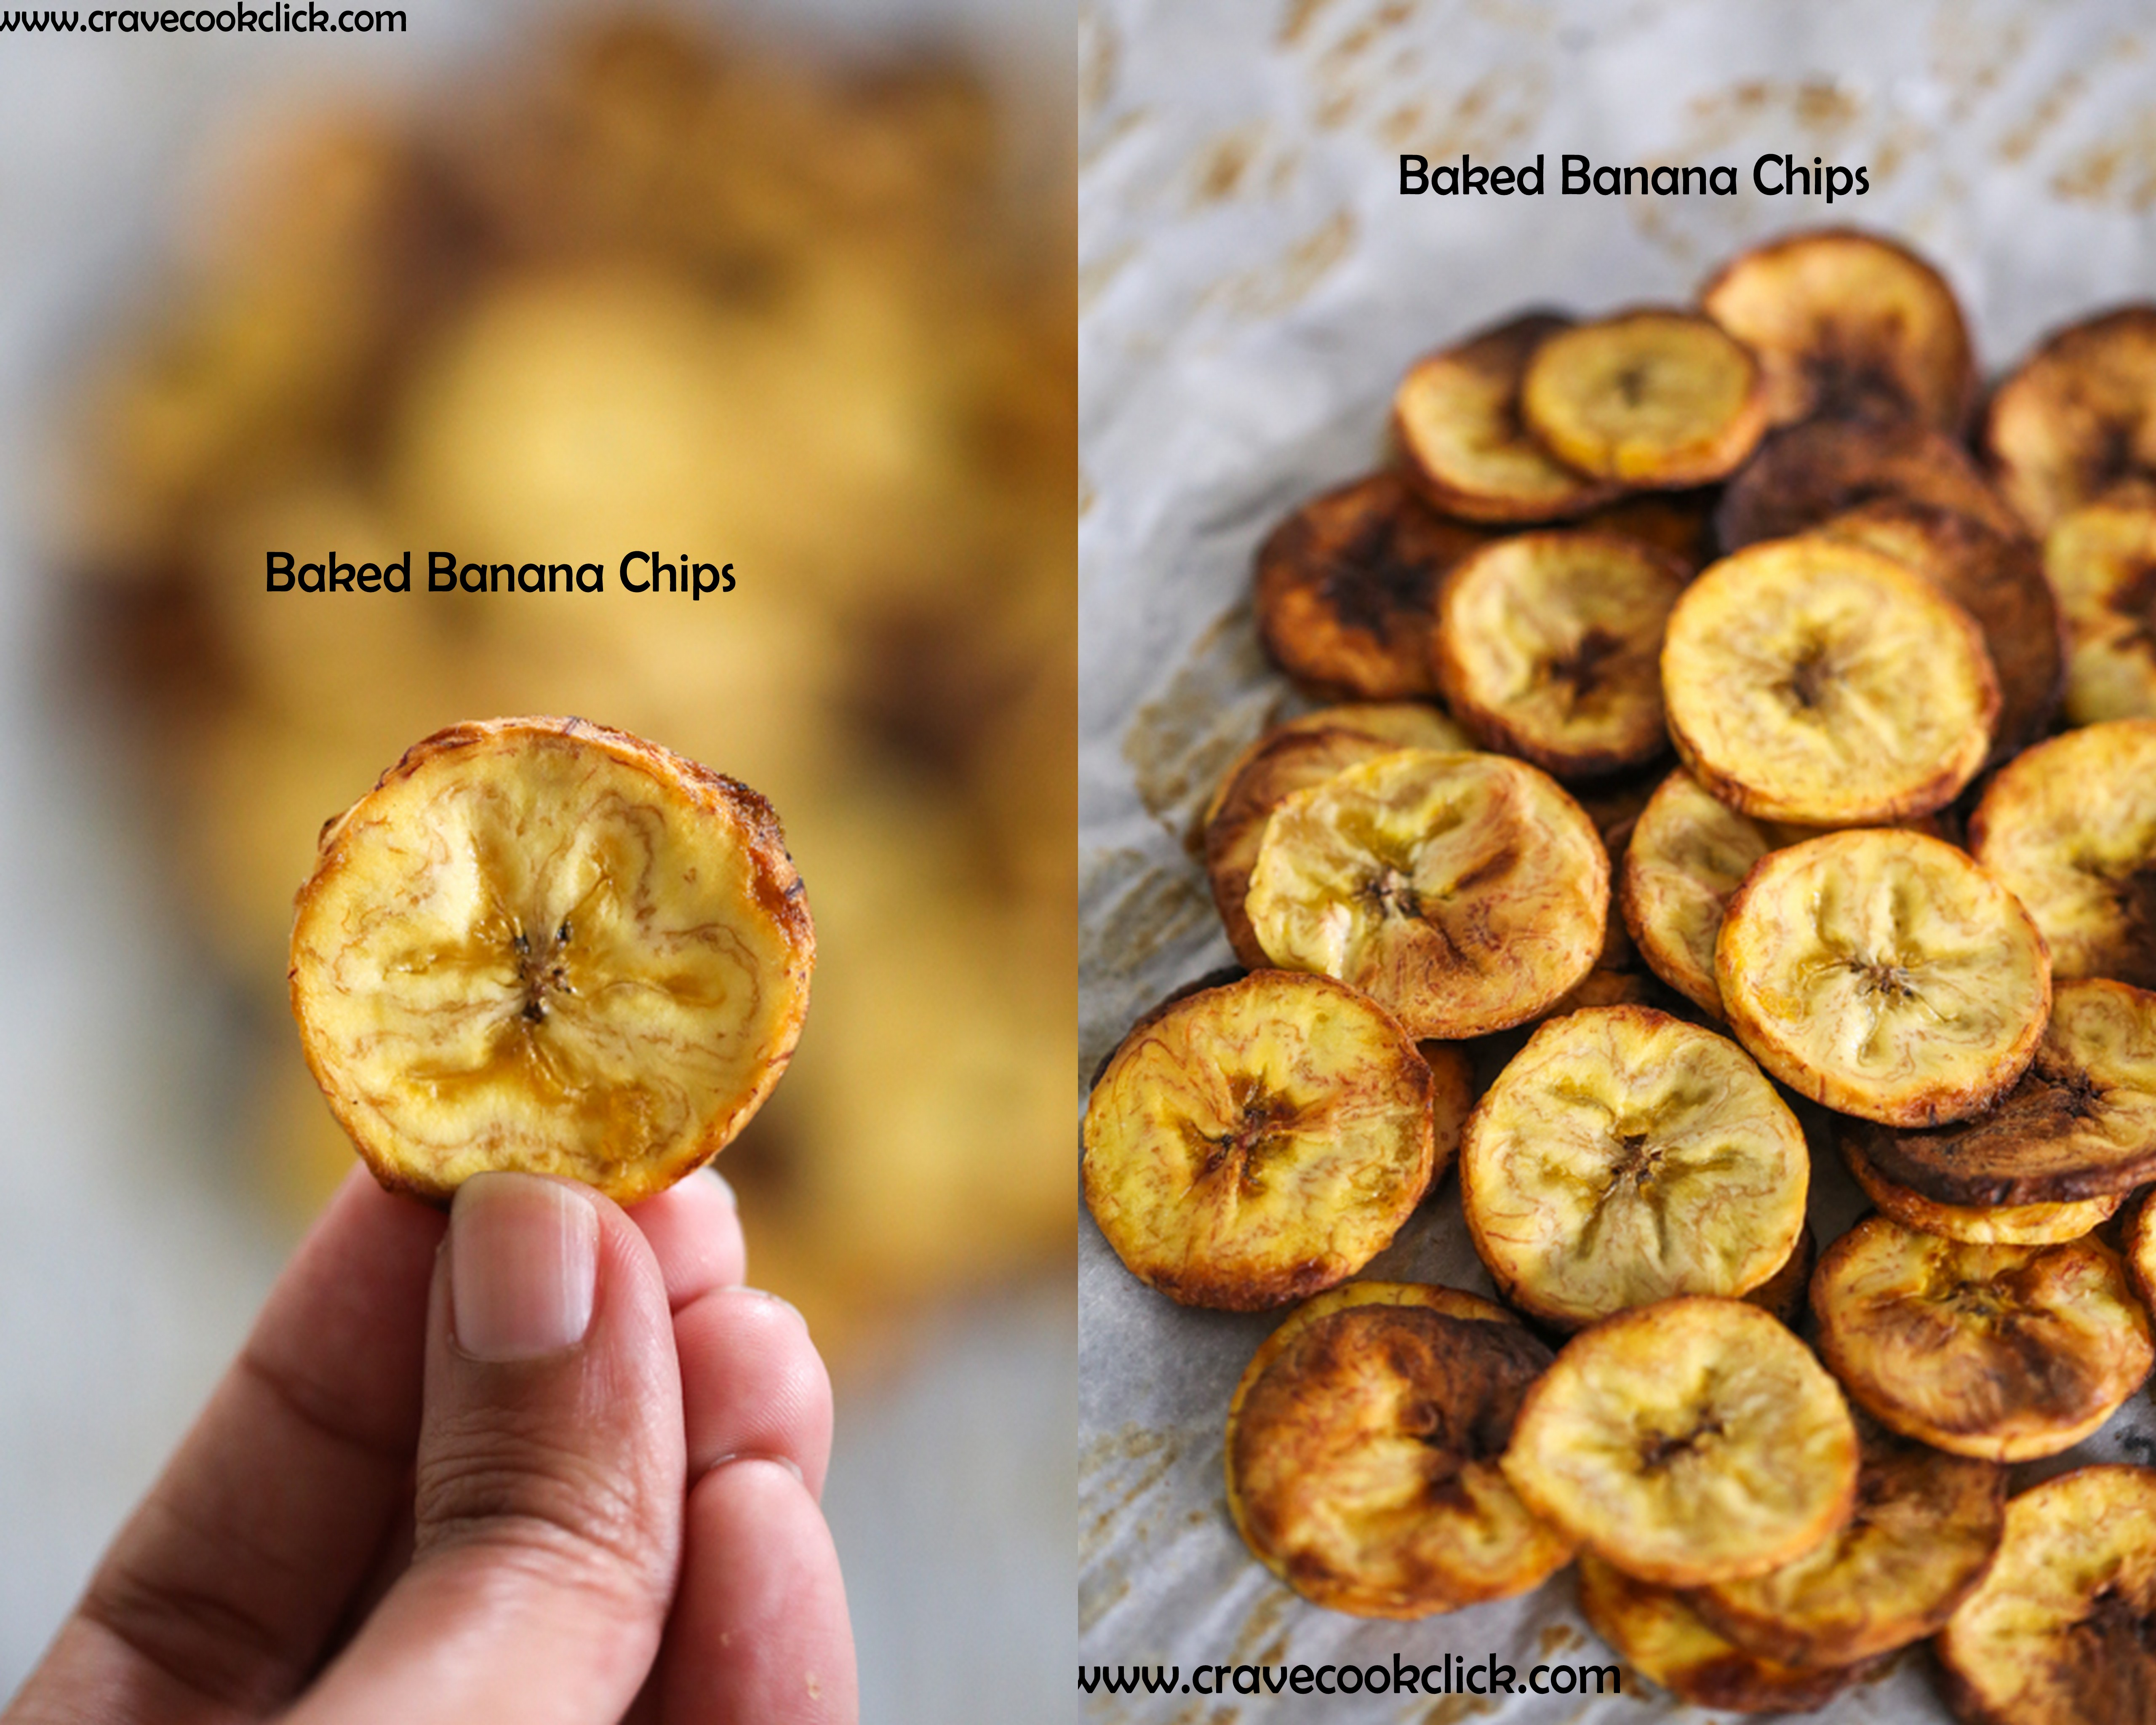 z1 Baked Banana/Plantain Chips Recipe